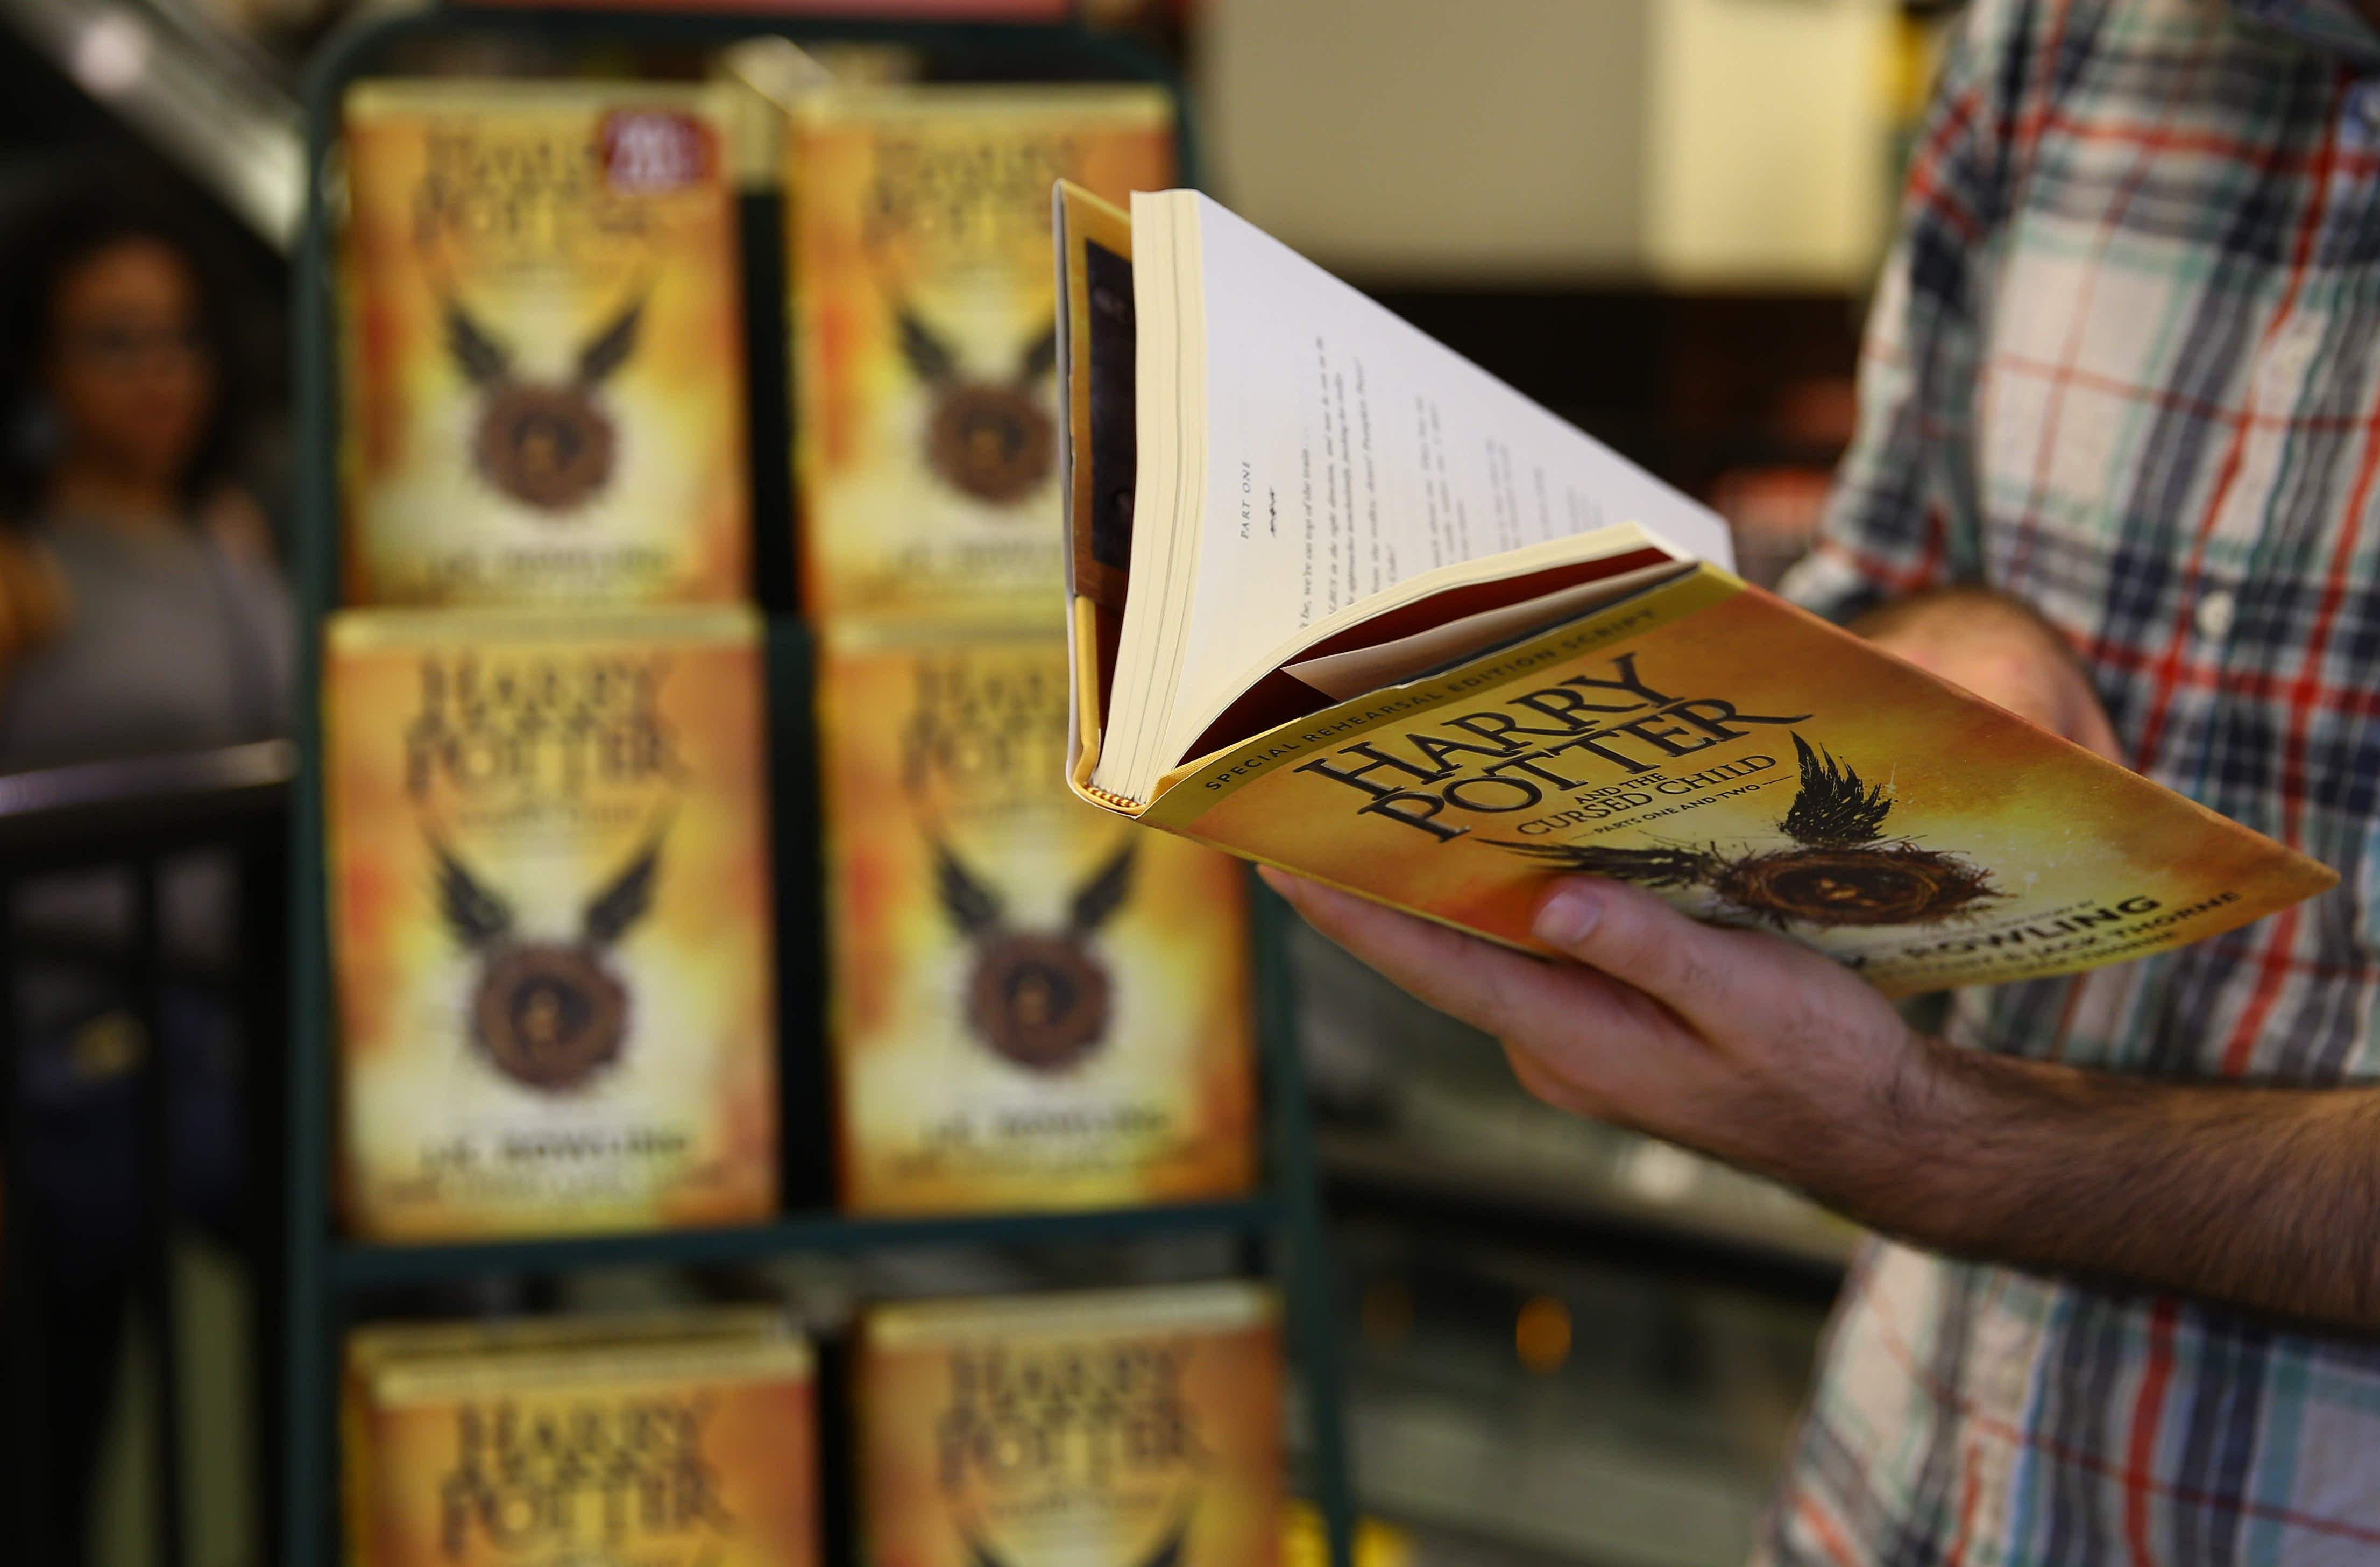 Ready to test your wizardry? British Library has announced a dream job for Harry Potter fans